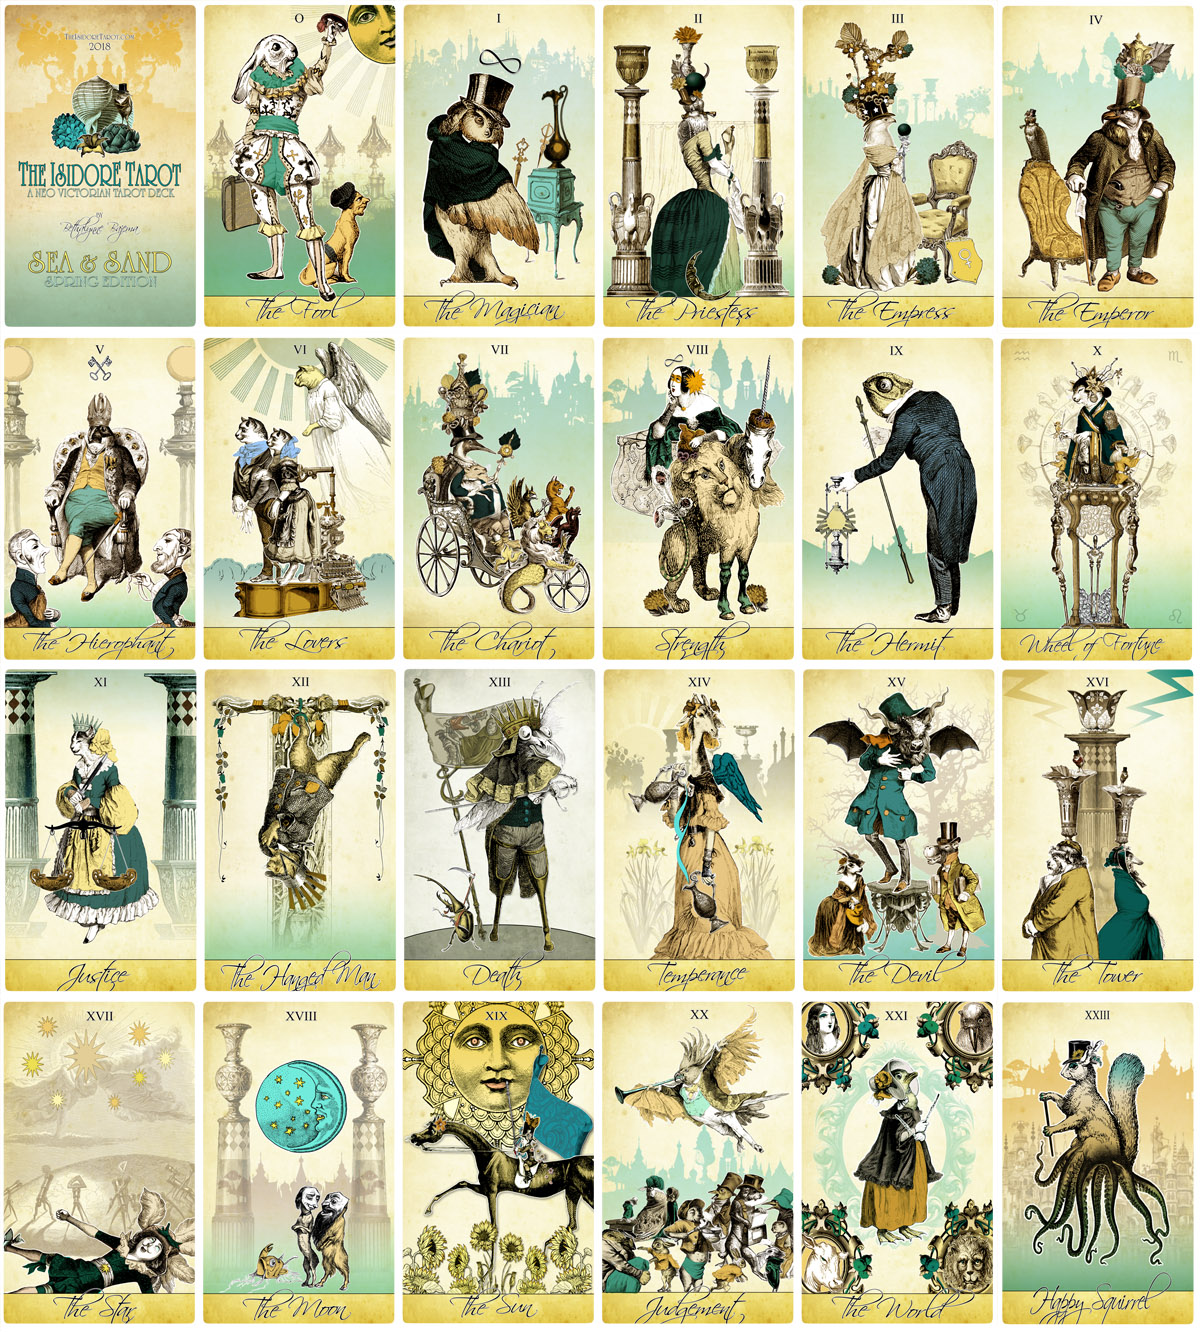 The Isidore Tarot - Sea and Sand Spring Edition